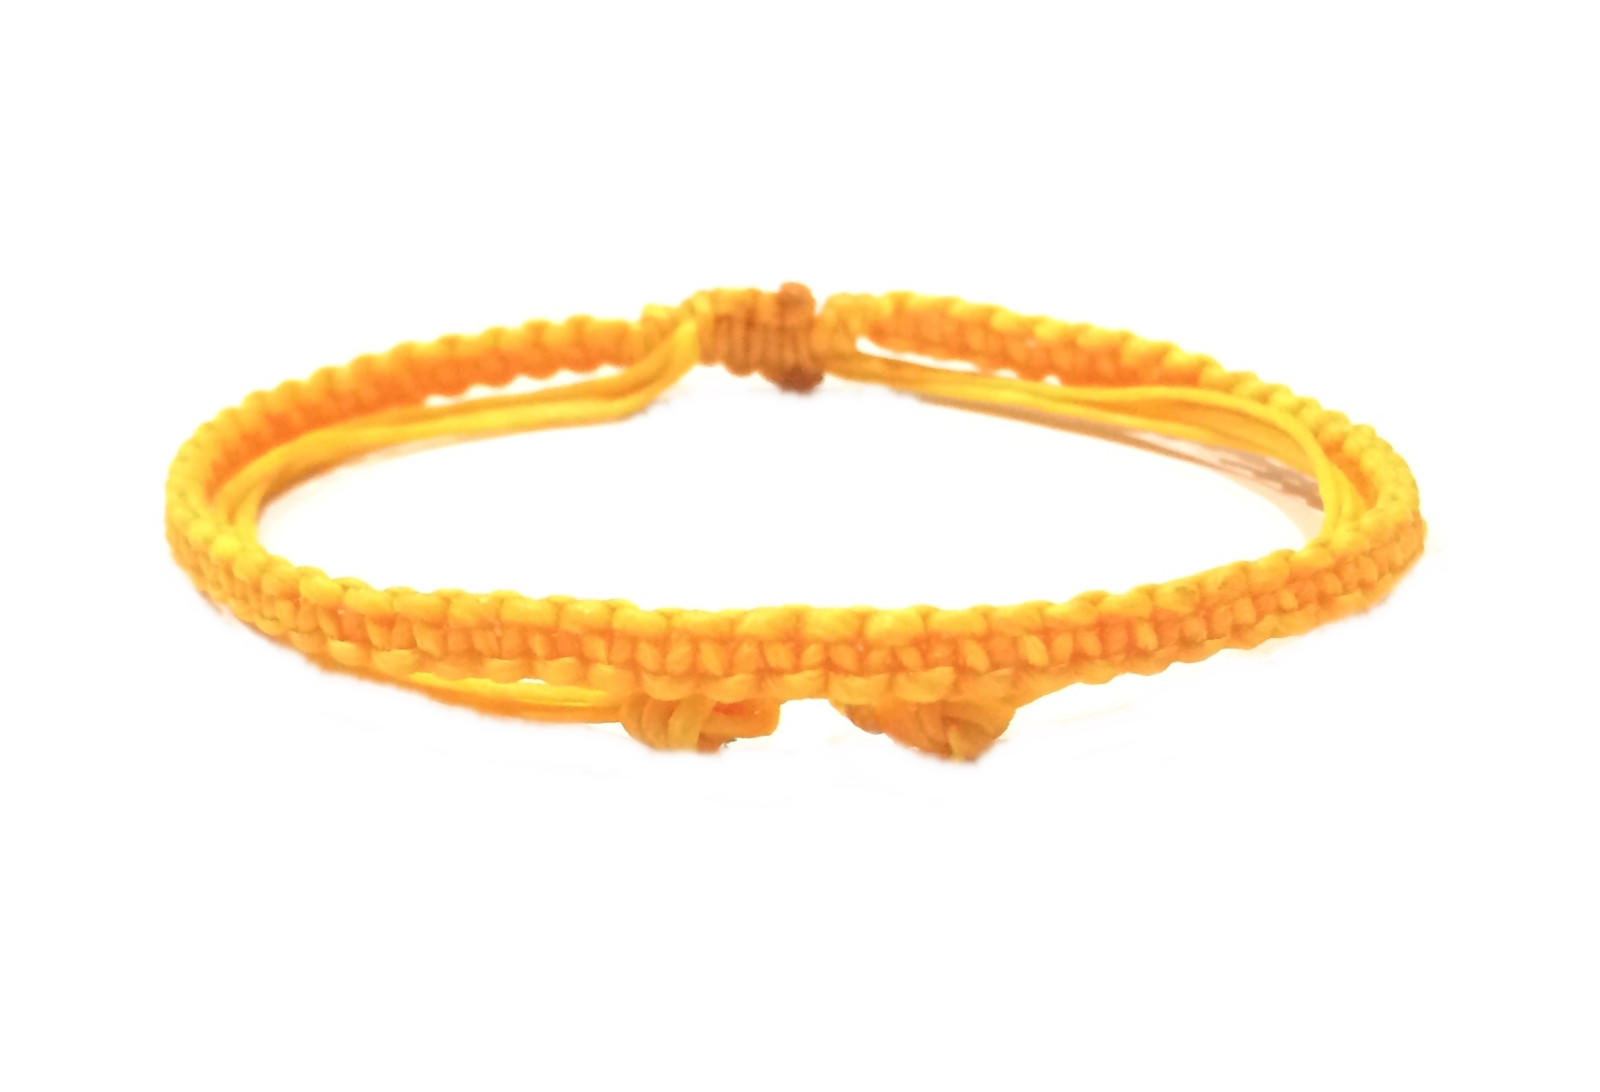 Fair Trade Thin Wax COTTON Cord Handcrafted Thai Buddhist WRISTBAND Bracelet